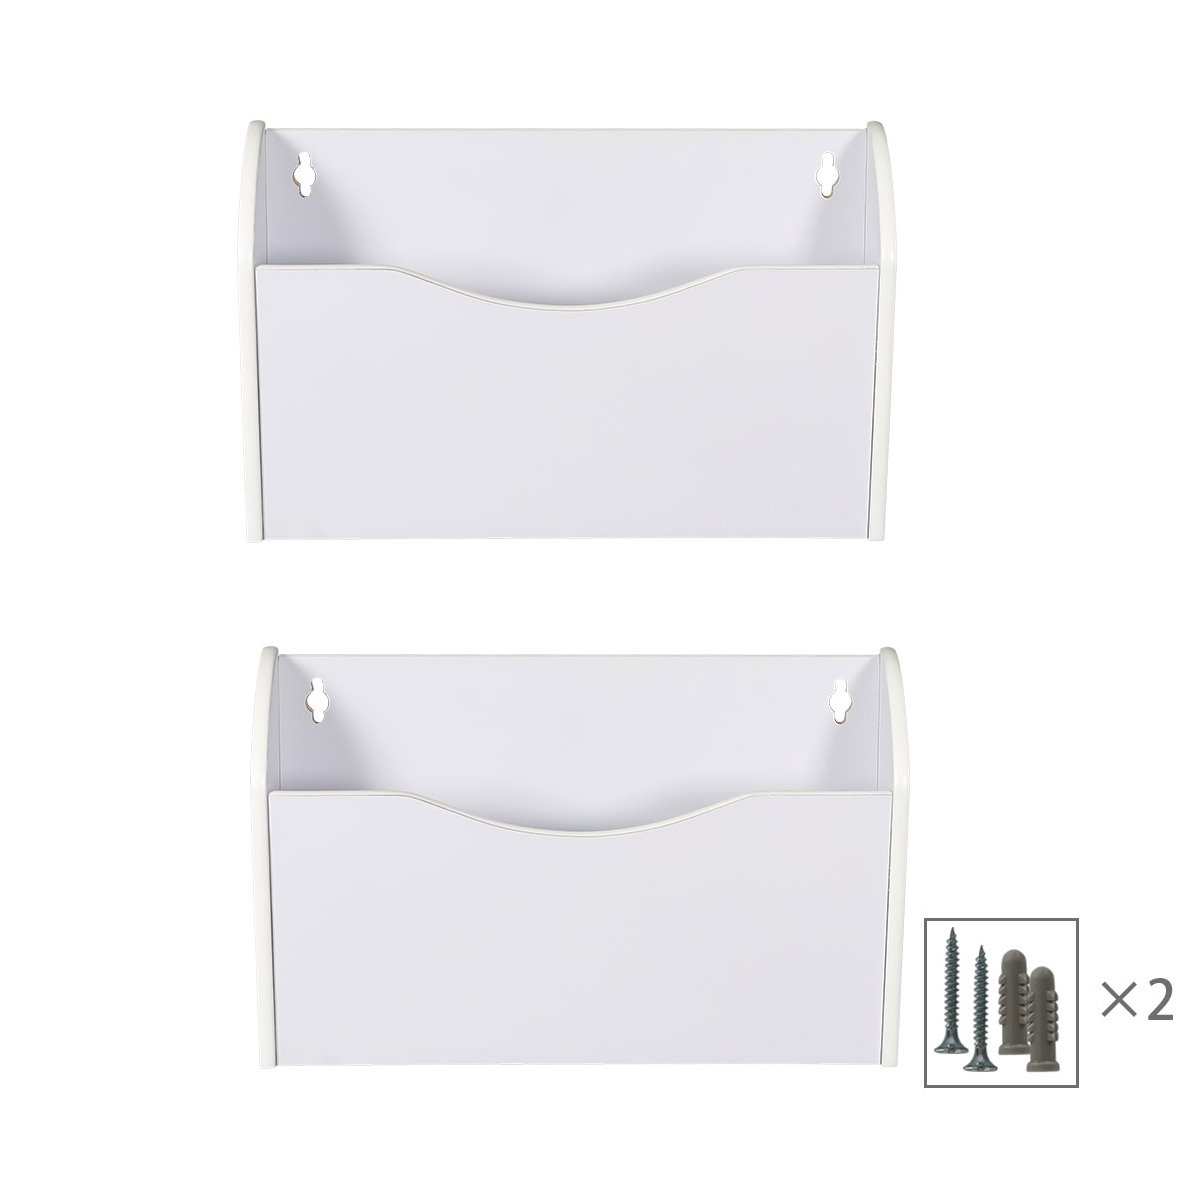 PAG 2 Pockets Hanging Wall File Holder Wall Mount Mail Organizer, White